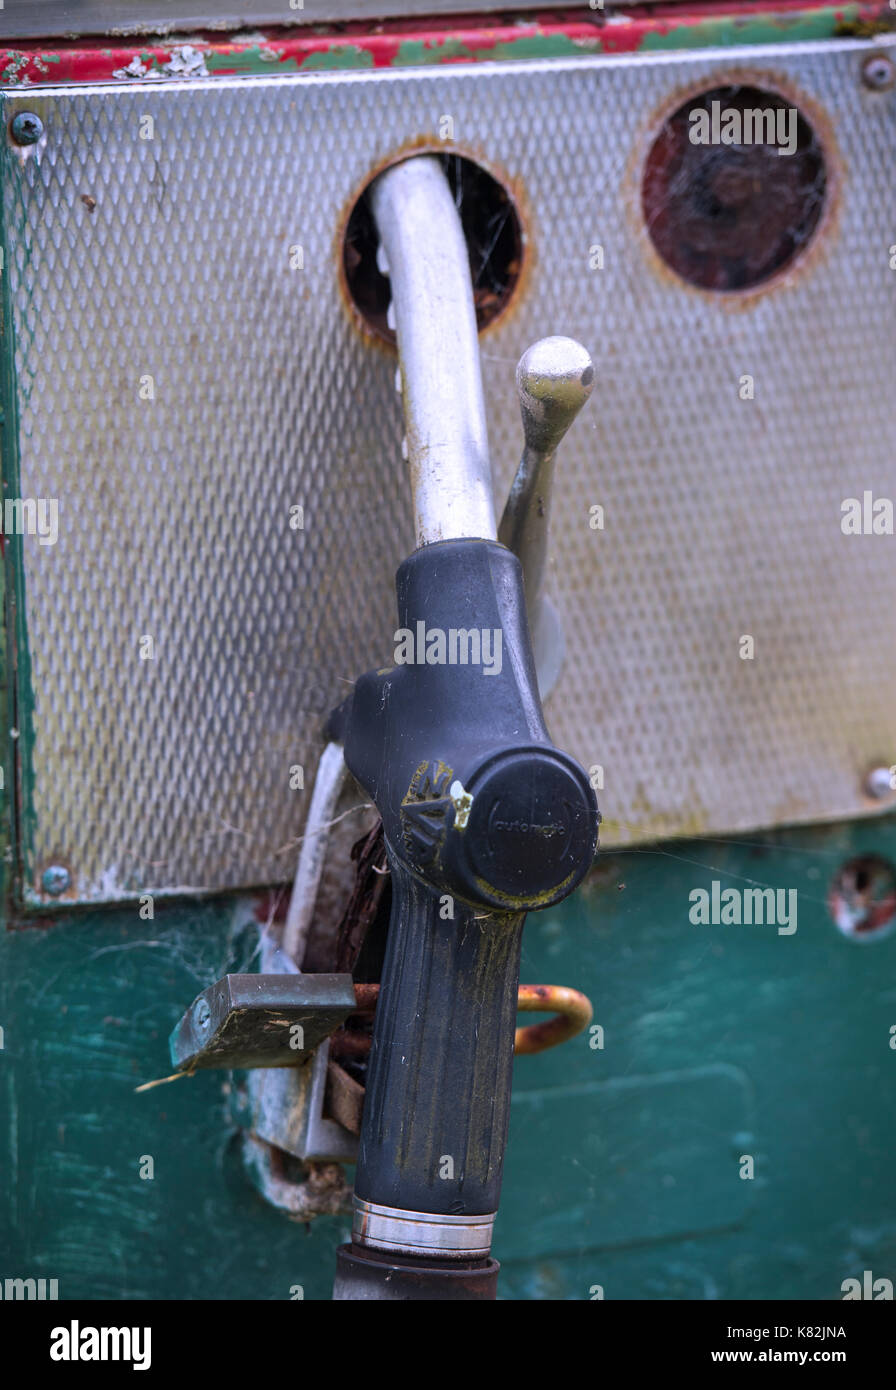 Detail of an old, disused petrol pump - Stock Image